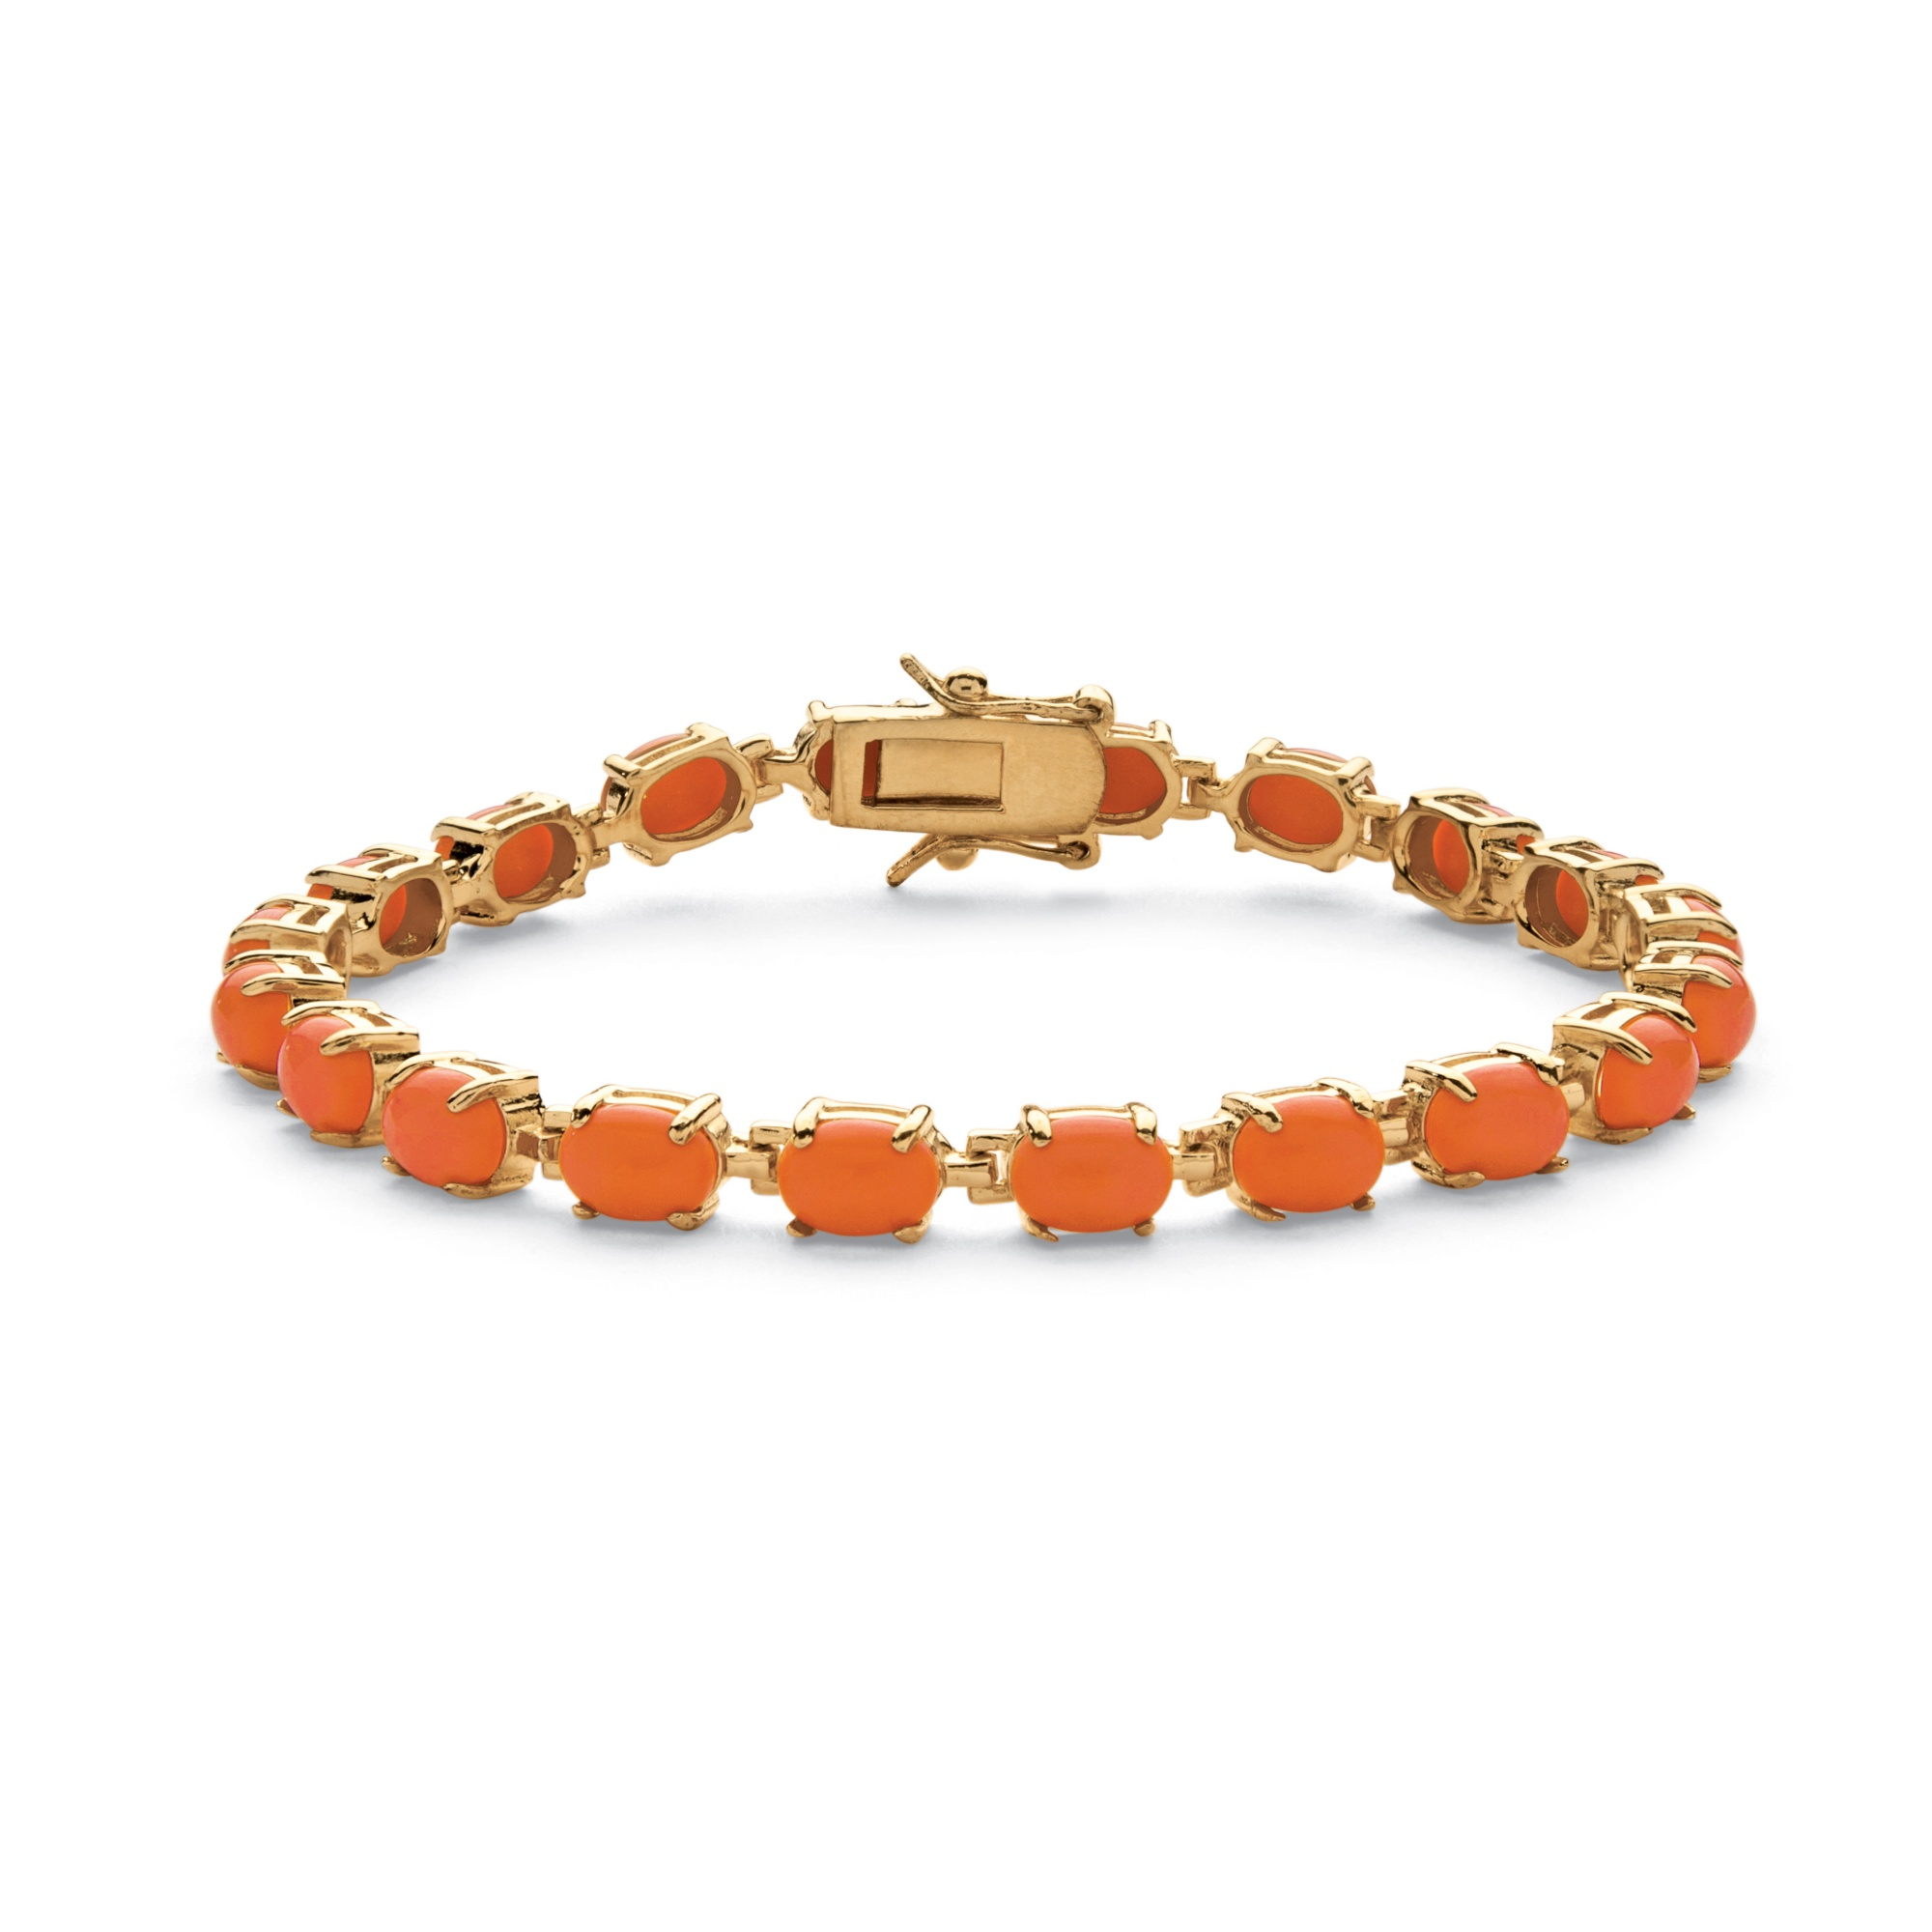 "Oval-Cut Simulated Coral Cabochon Tennis Bracelet in 14k Gold-Plated 7.5"" by PalmBeach Jewelry"